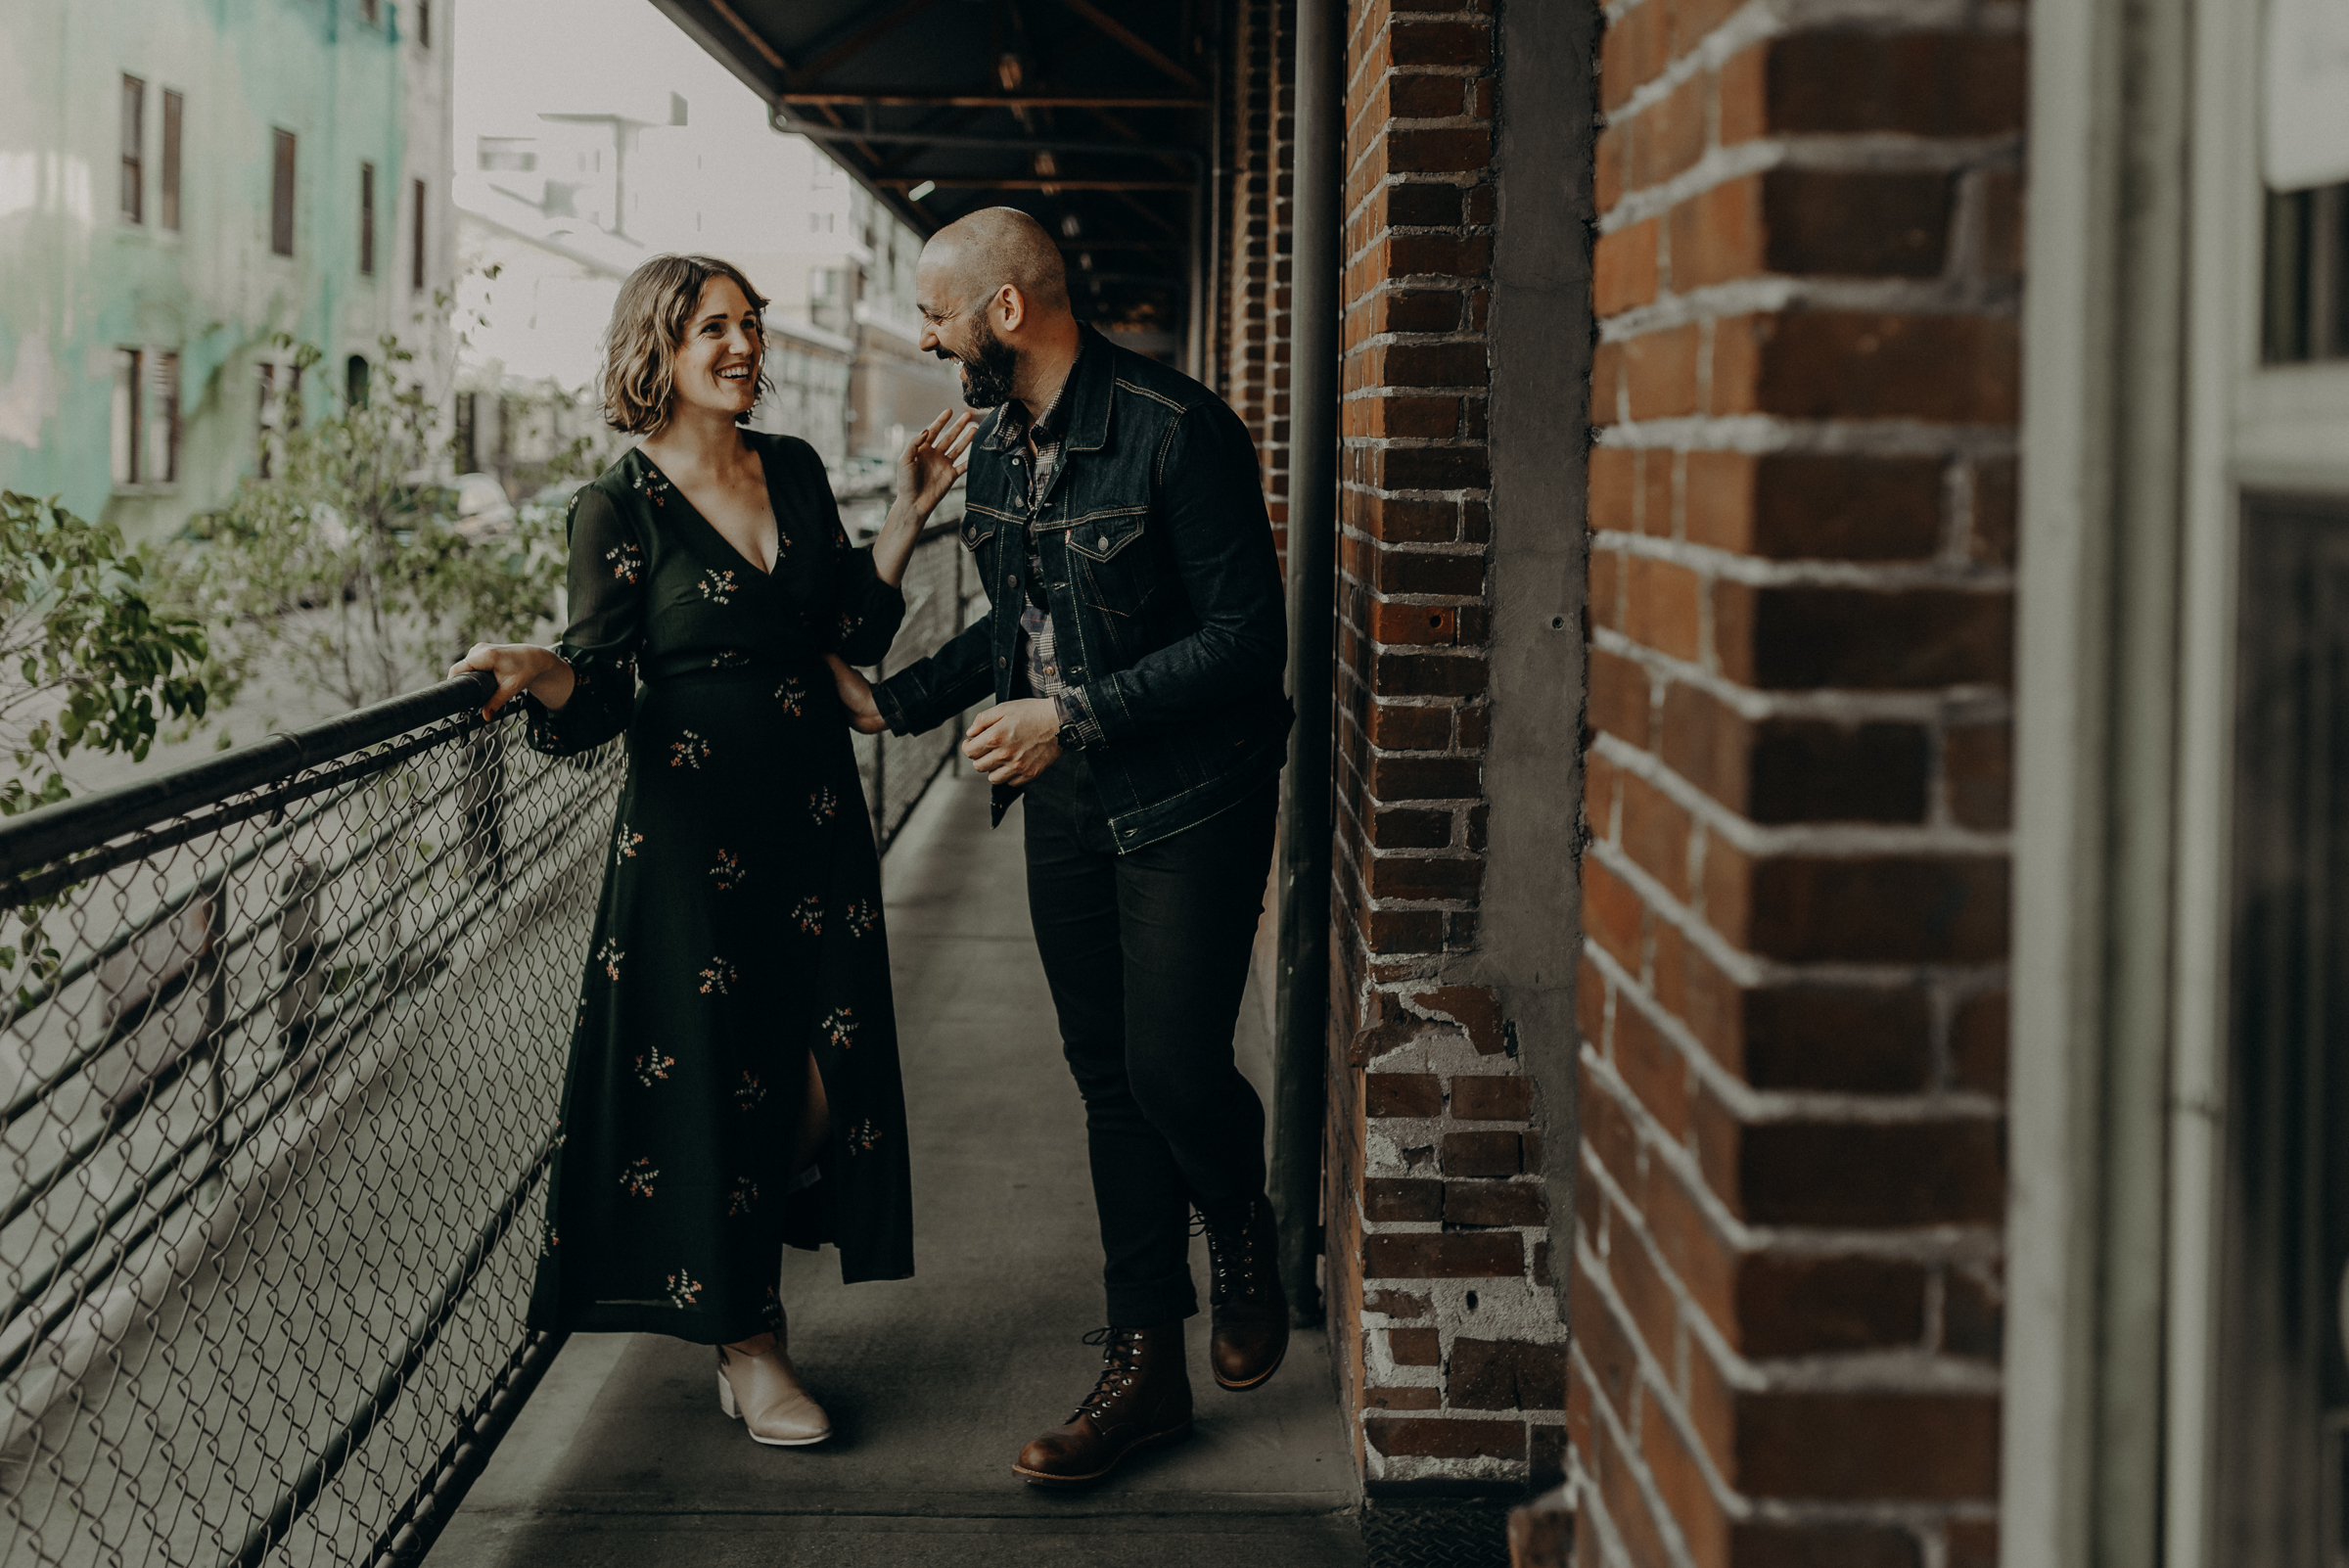 Isaiah + Taylor Photography - Downtown Los Angeles Arts District Engagement01.jpg